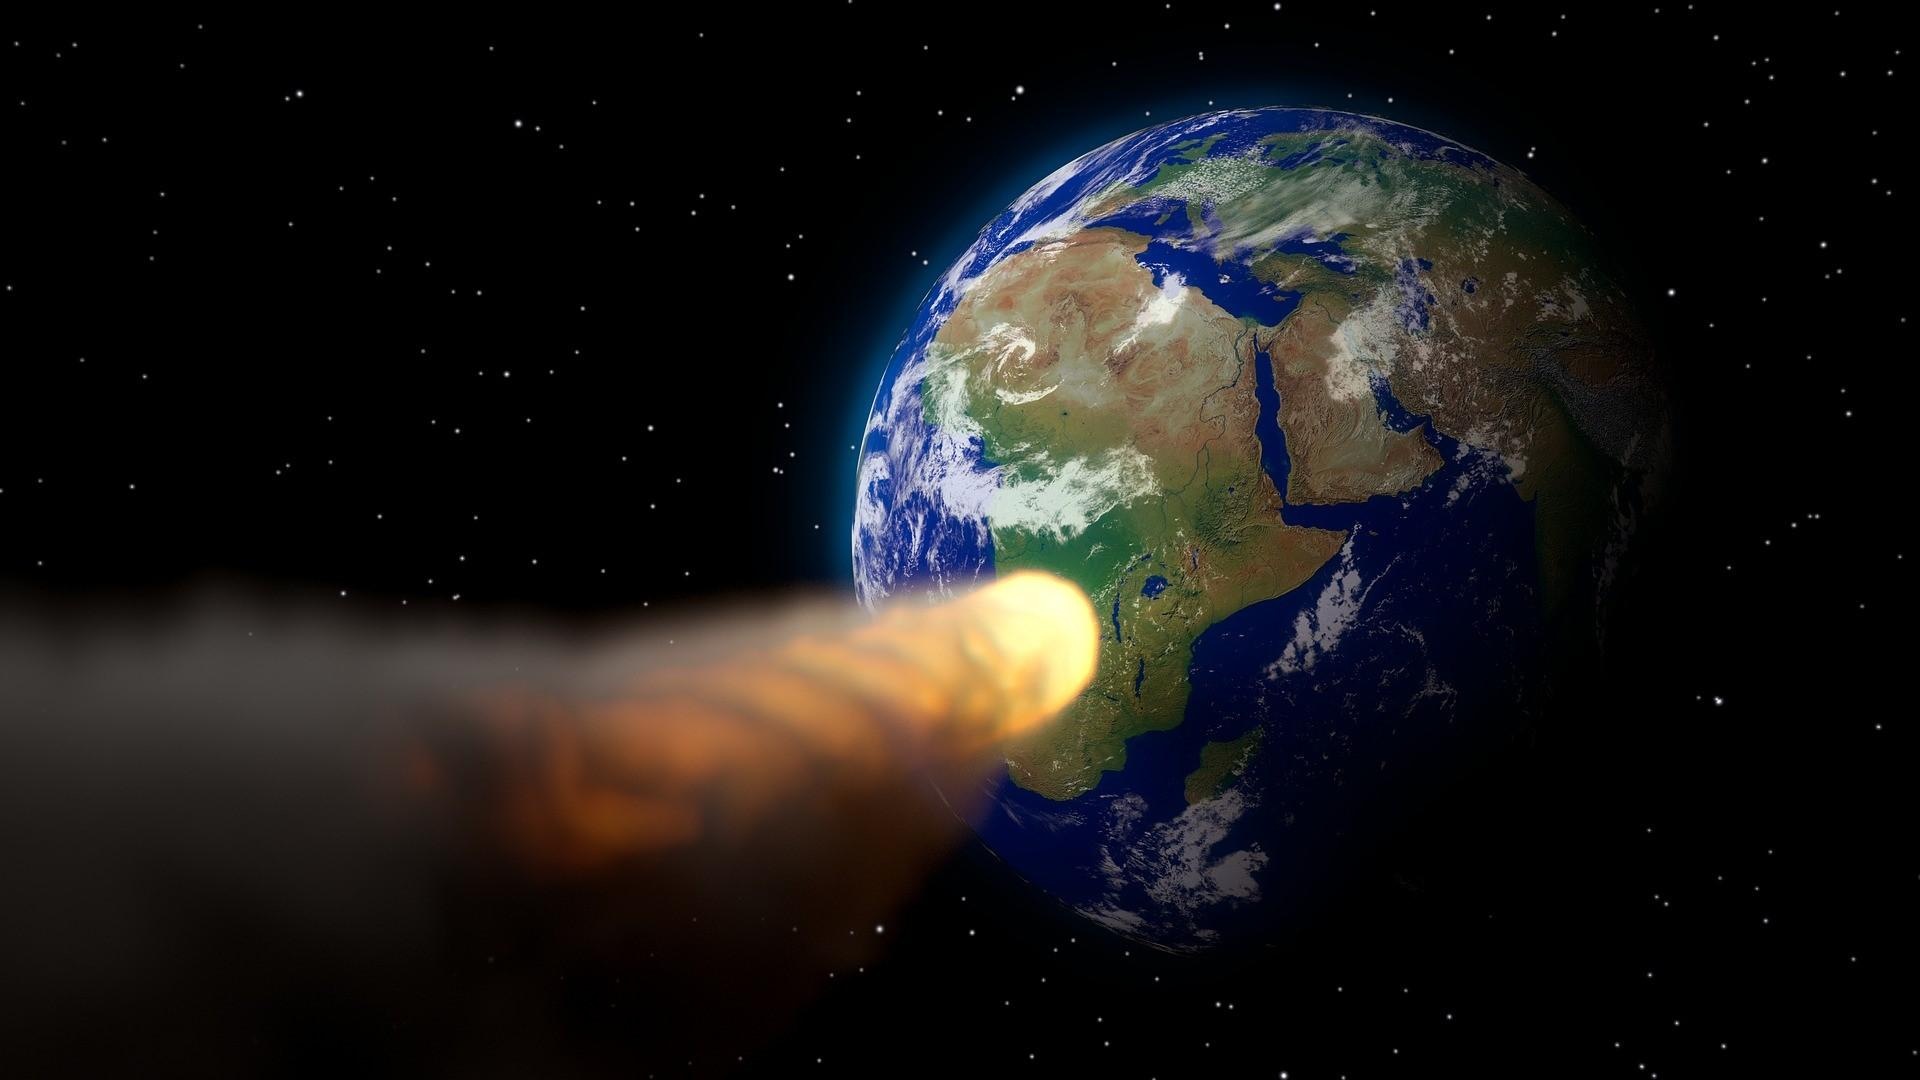 asteroid near earth today - HD1920×1080